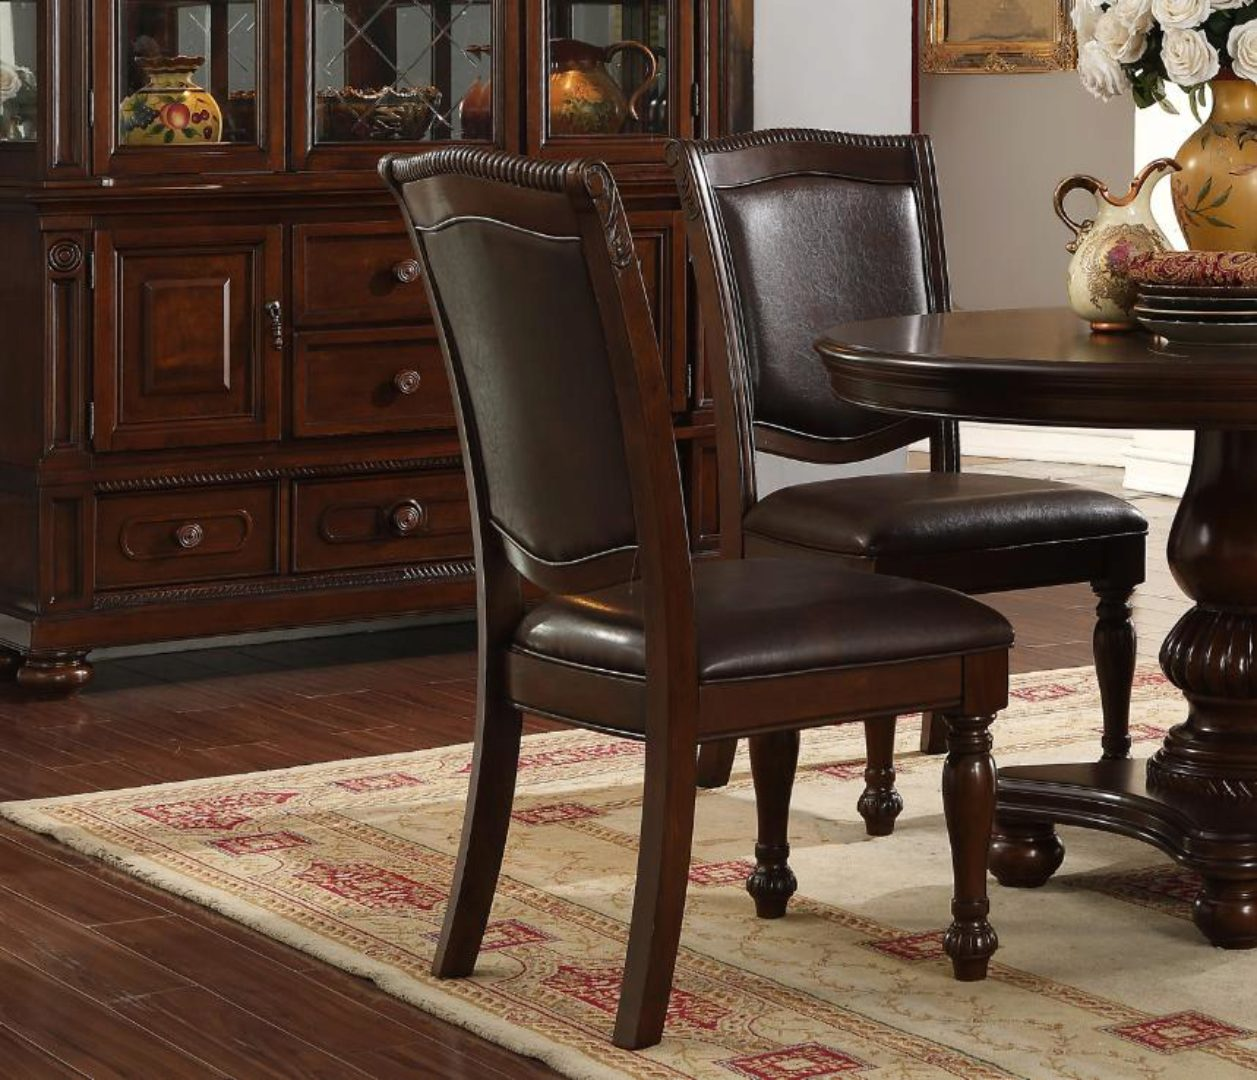 Picture of: Brown Rich Wood Round Dining Table Set 5pcs Mcferran D7900 4848 D7900 4848 Set 5